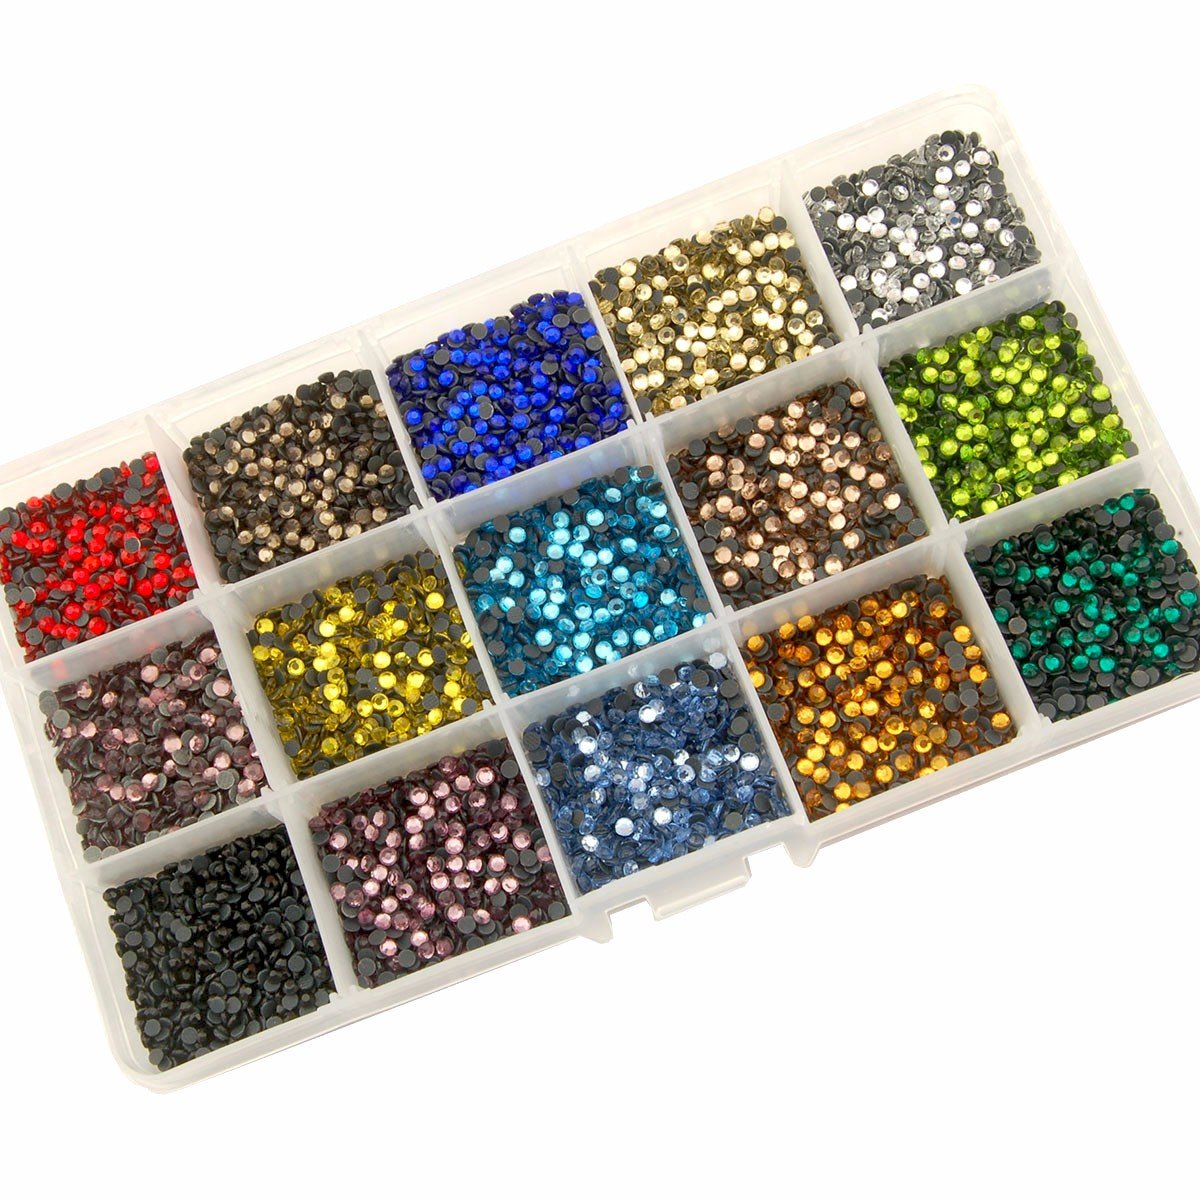 Summer-Ray SS10 2.8mm Assorted Colors Hot Fix Rhinestones In Storage Box by Summer-Ray.com